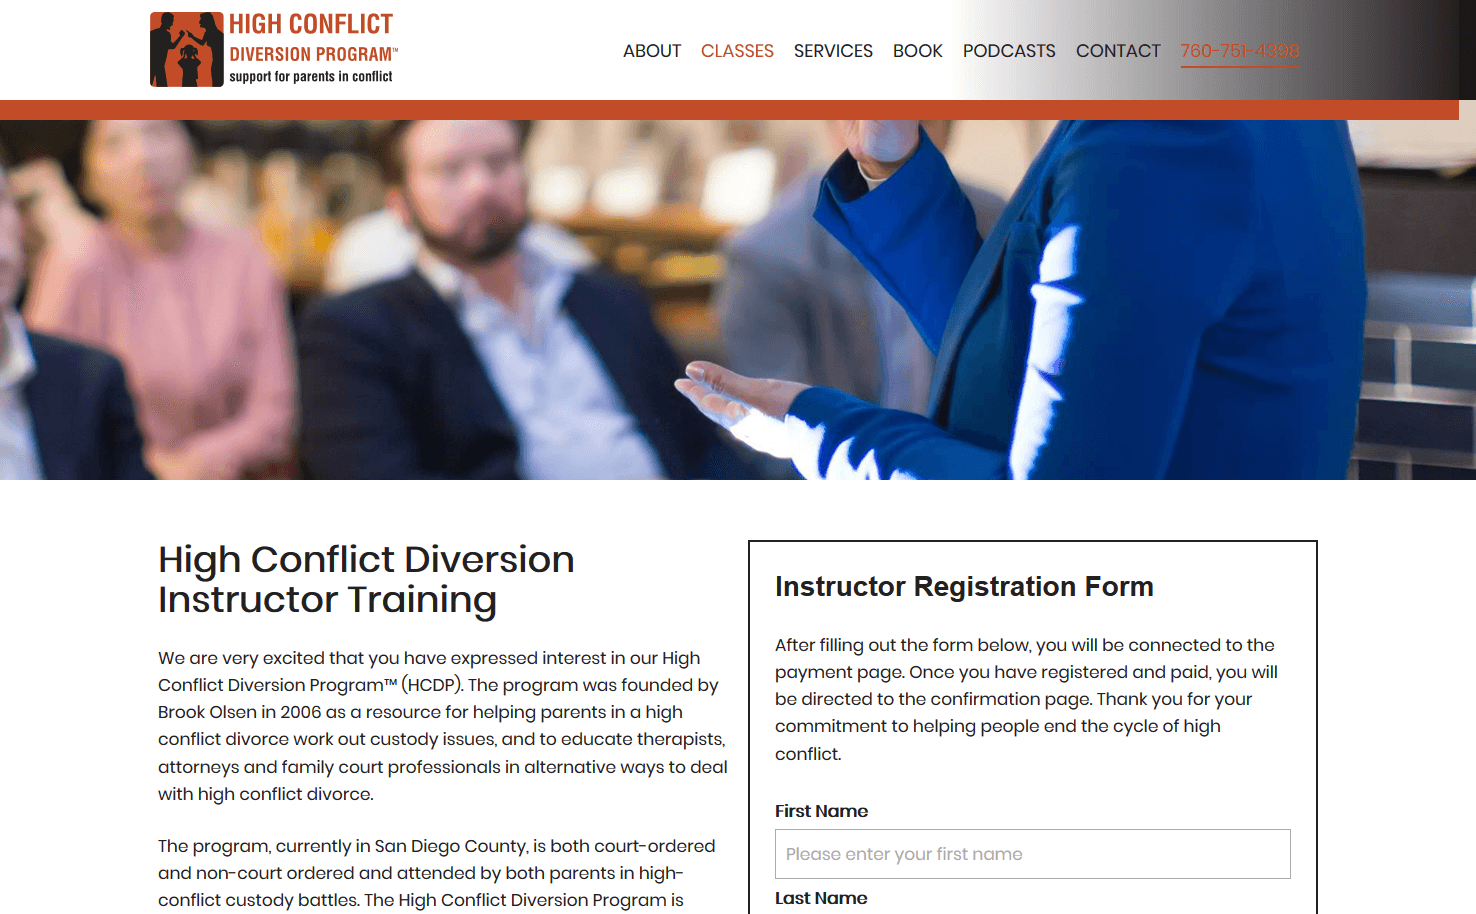 High Conflict Diversion Program Instructor Training